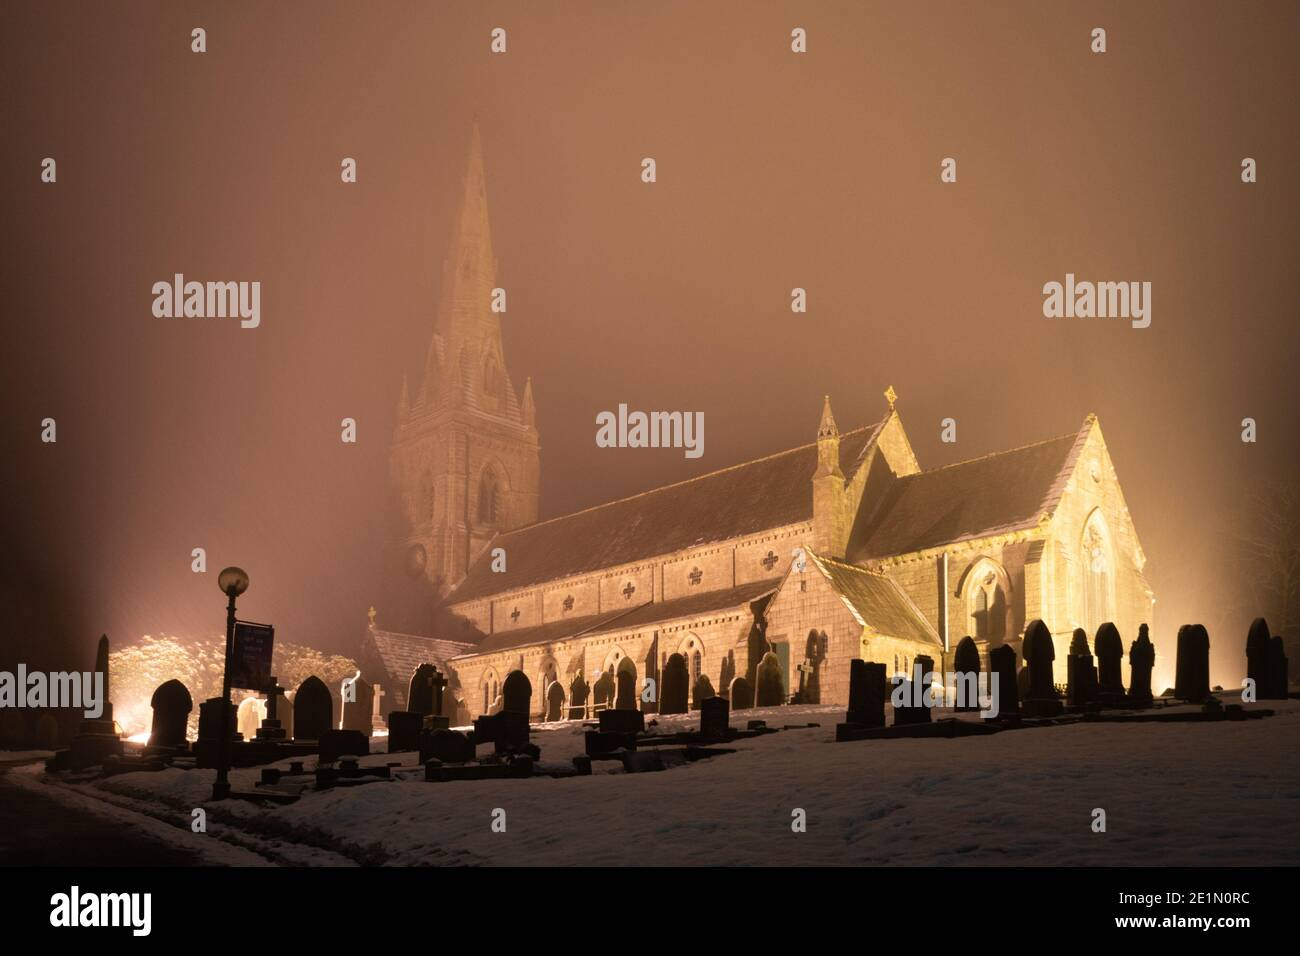 St Peter's Church, Belmont, Lancashire, England, UK. Church of England, Diocese of Manchester. Church grounds illuminated at night in snow Stock Photo